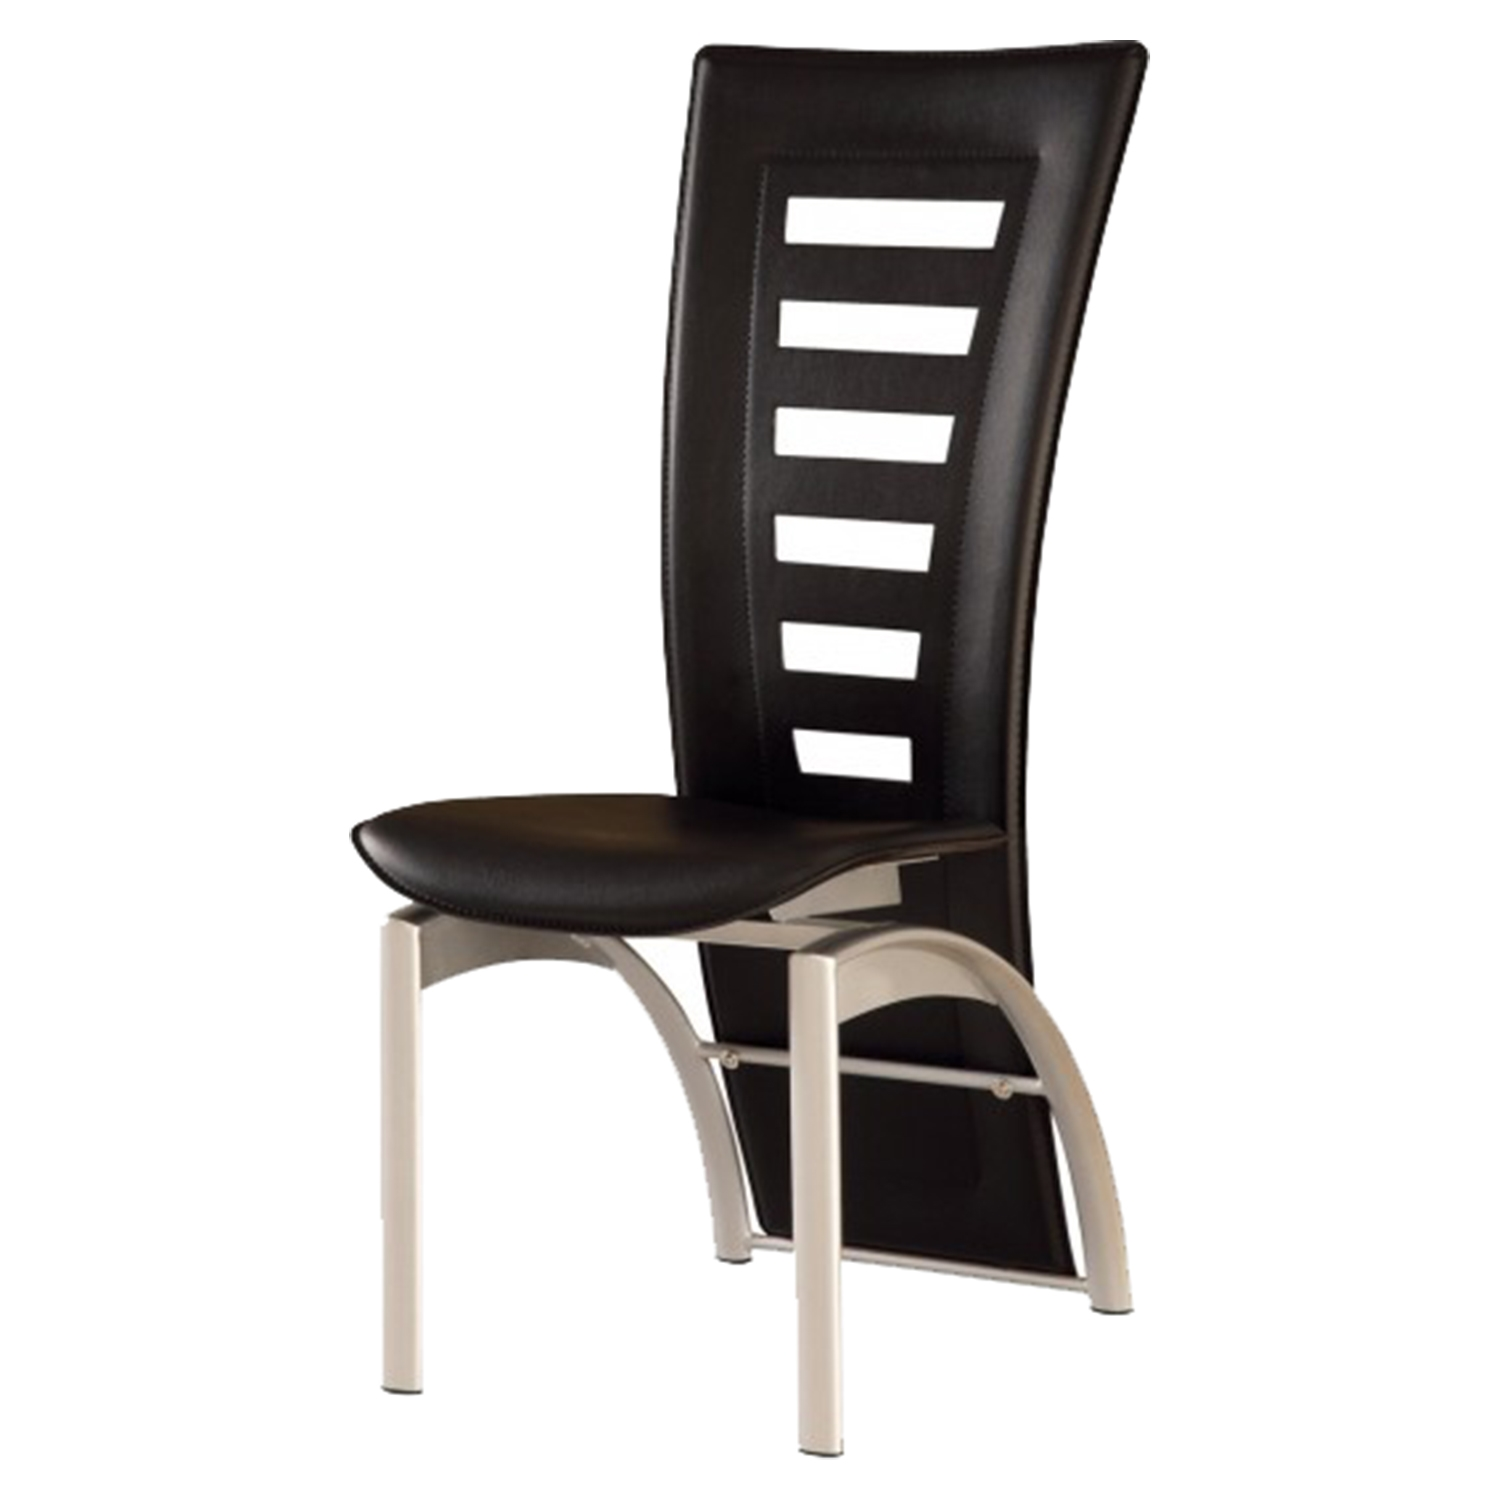 Sabrina Dining Chair in Black